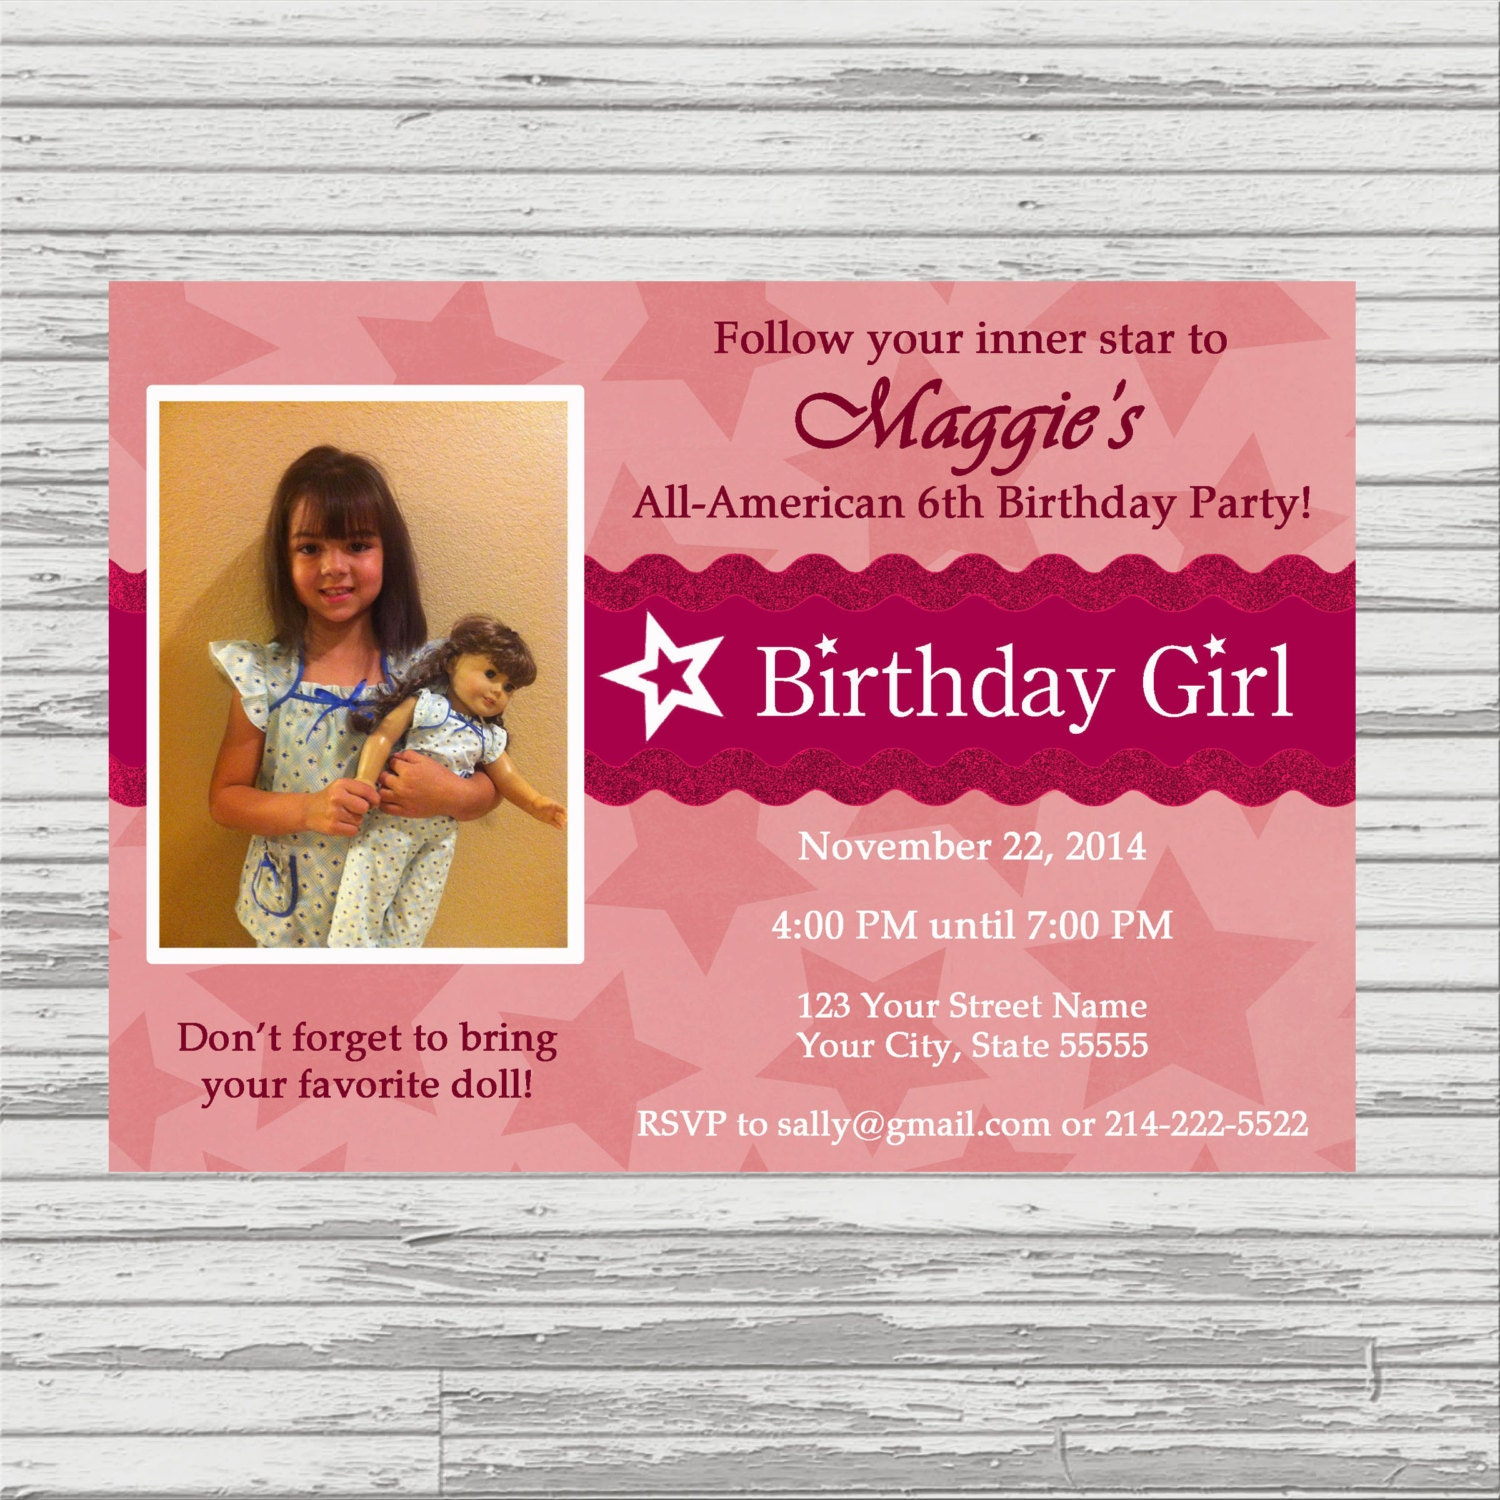 How To Make Your Own Party Invitations with beautiful invitation ideas